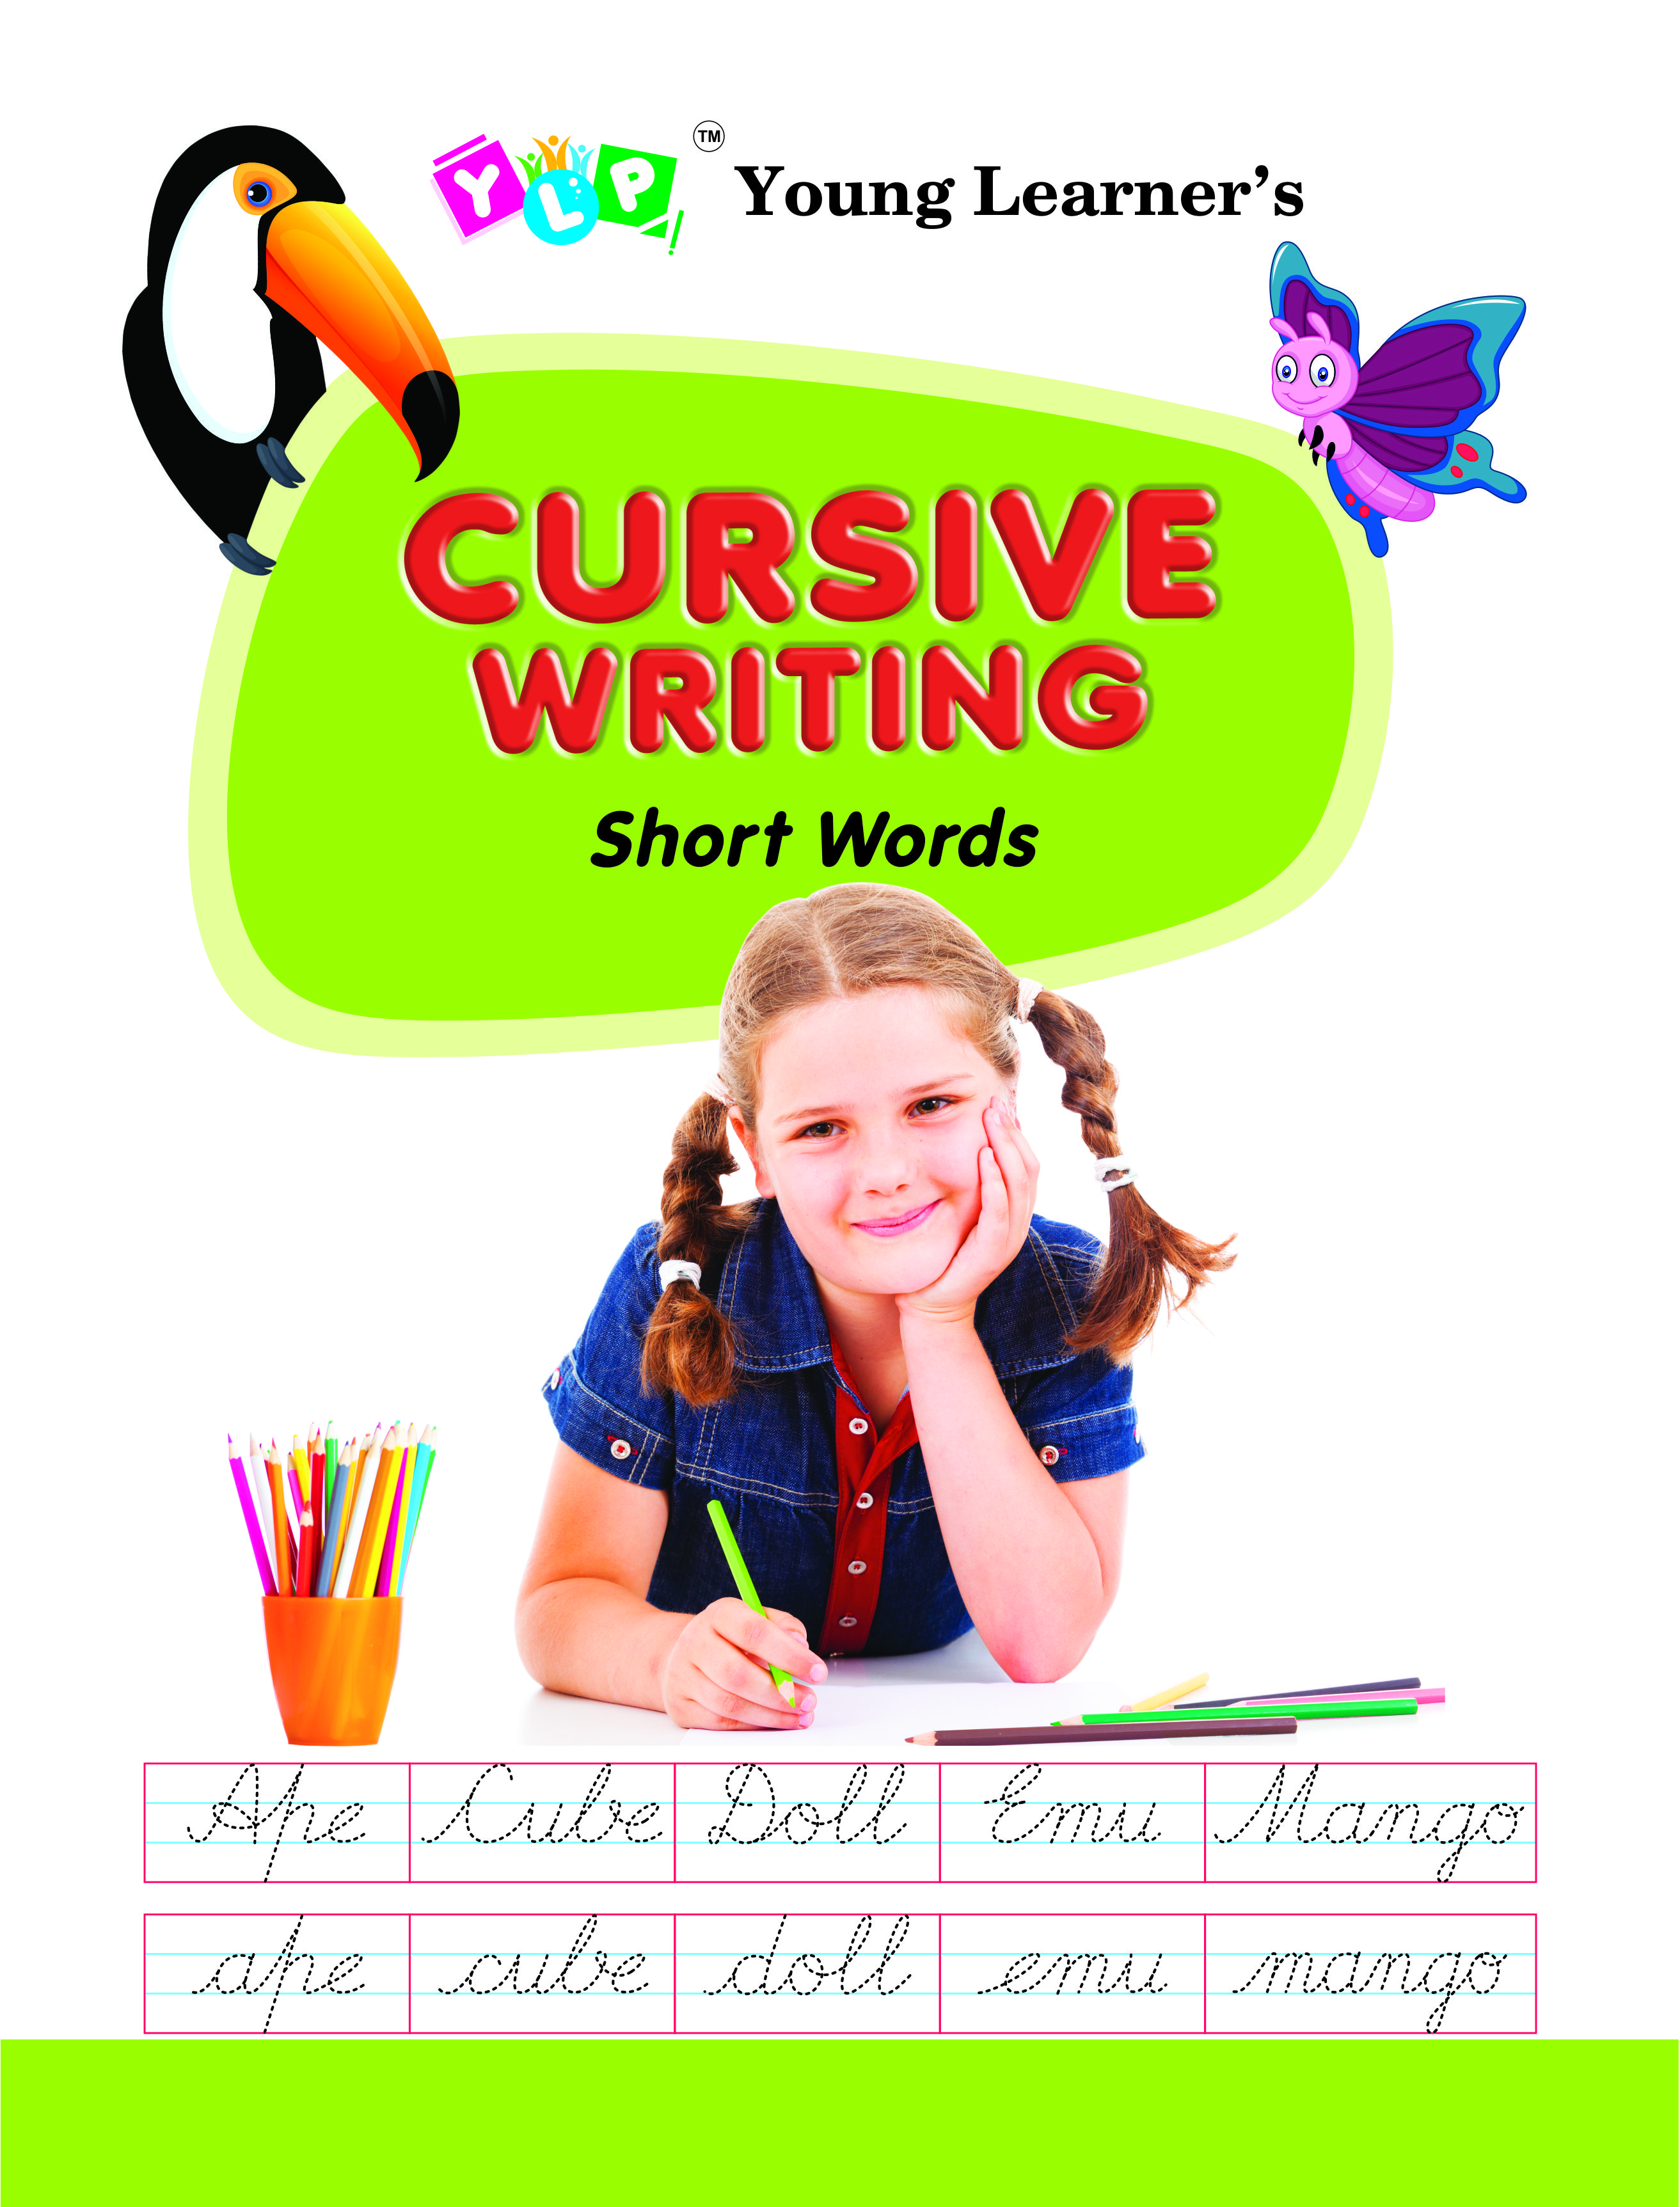 Cursive Writing (Short Words)